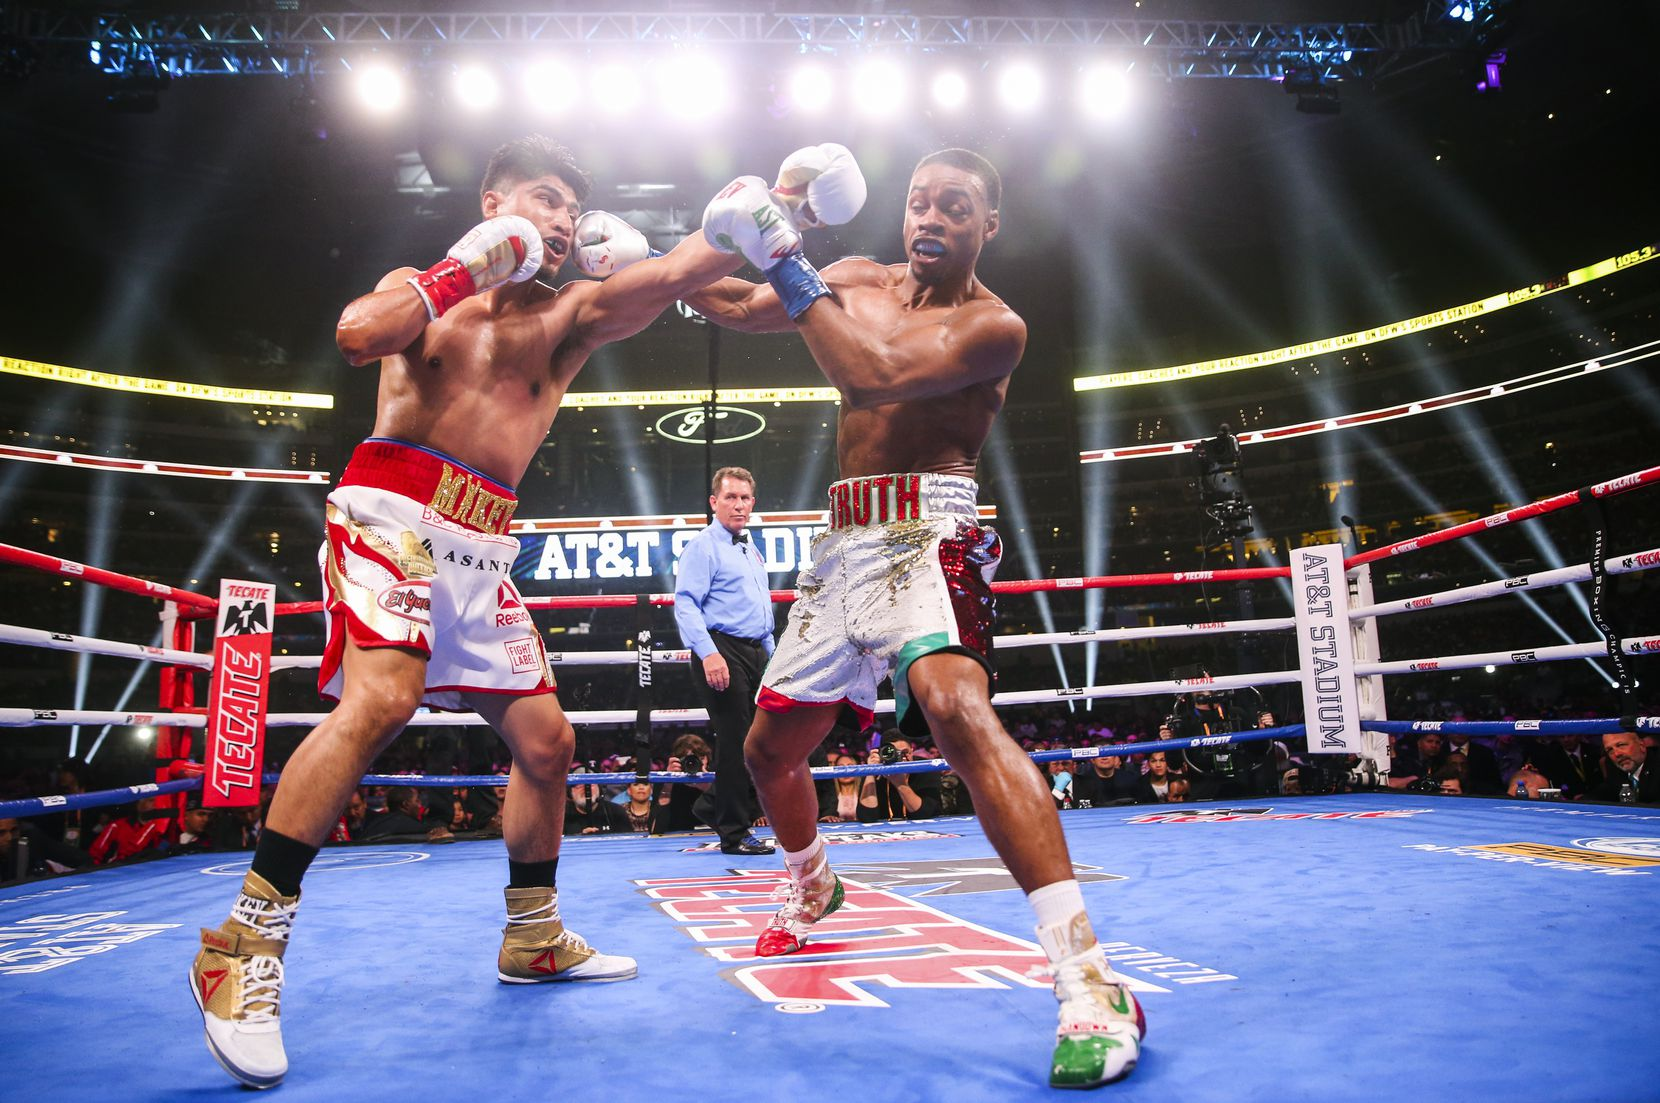 Mikey Garcia and Errol Spence Jr. box during the first round of a IBF World Welterweight Championship match on March 16, 2019, at AT&T Stadium in Arlington.